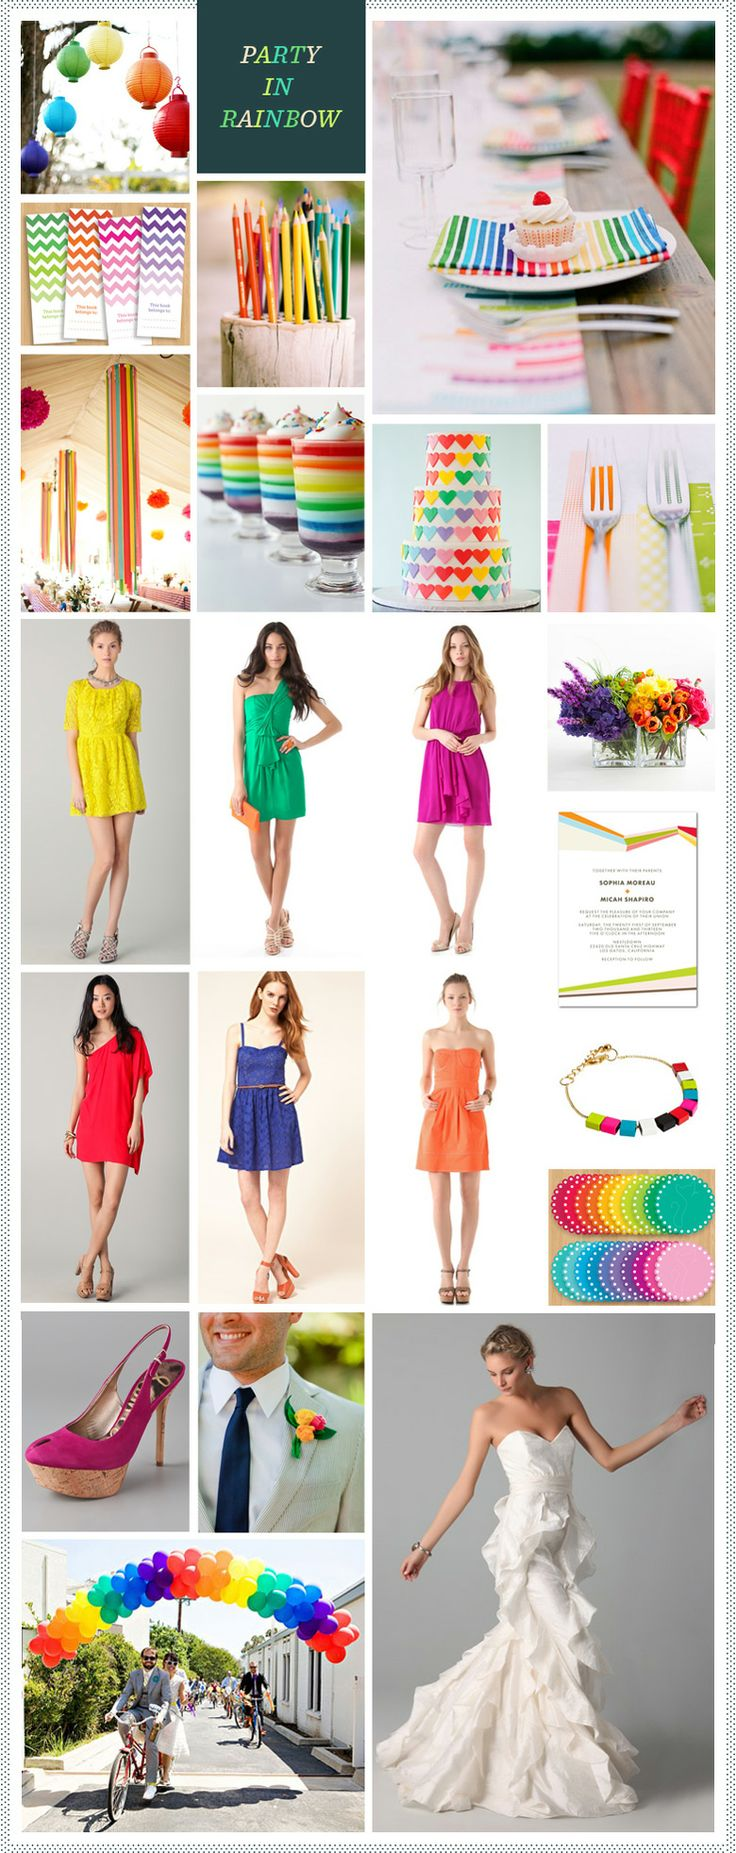 Party in Rainbow - pinning this for you, @Lindsey Bischoff Schaefer